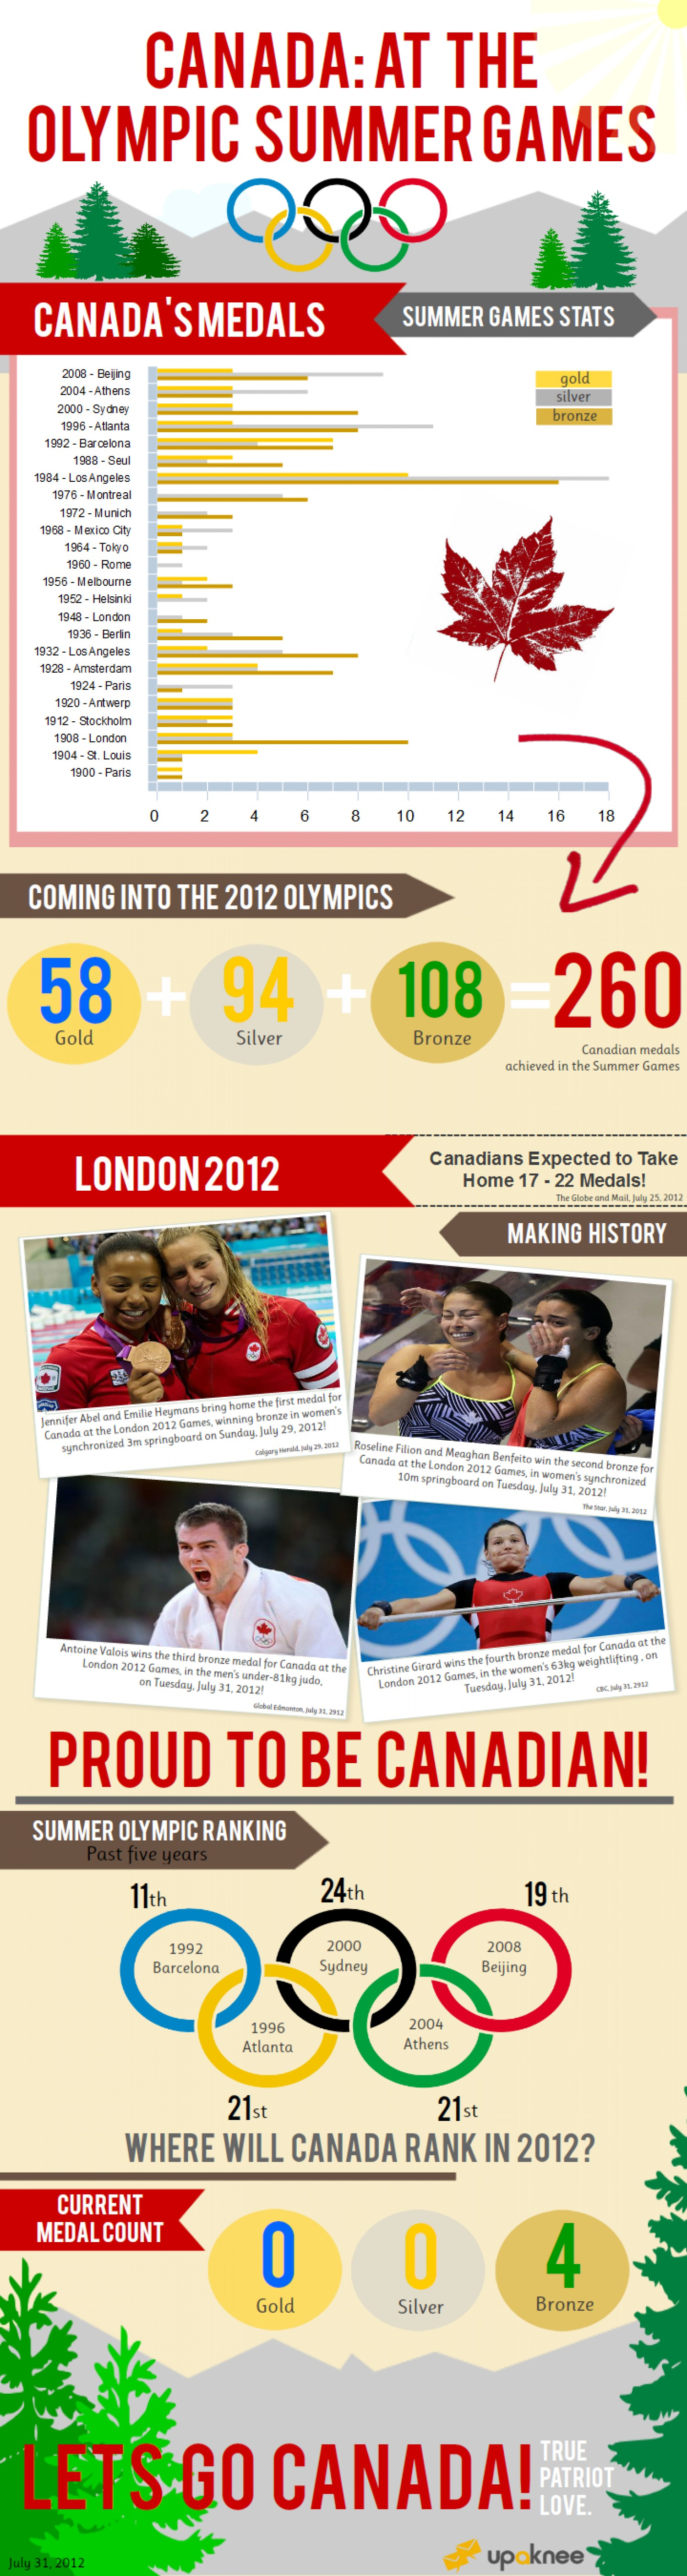 1. Canada at the Olympic summer games